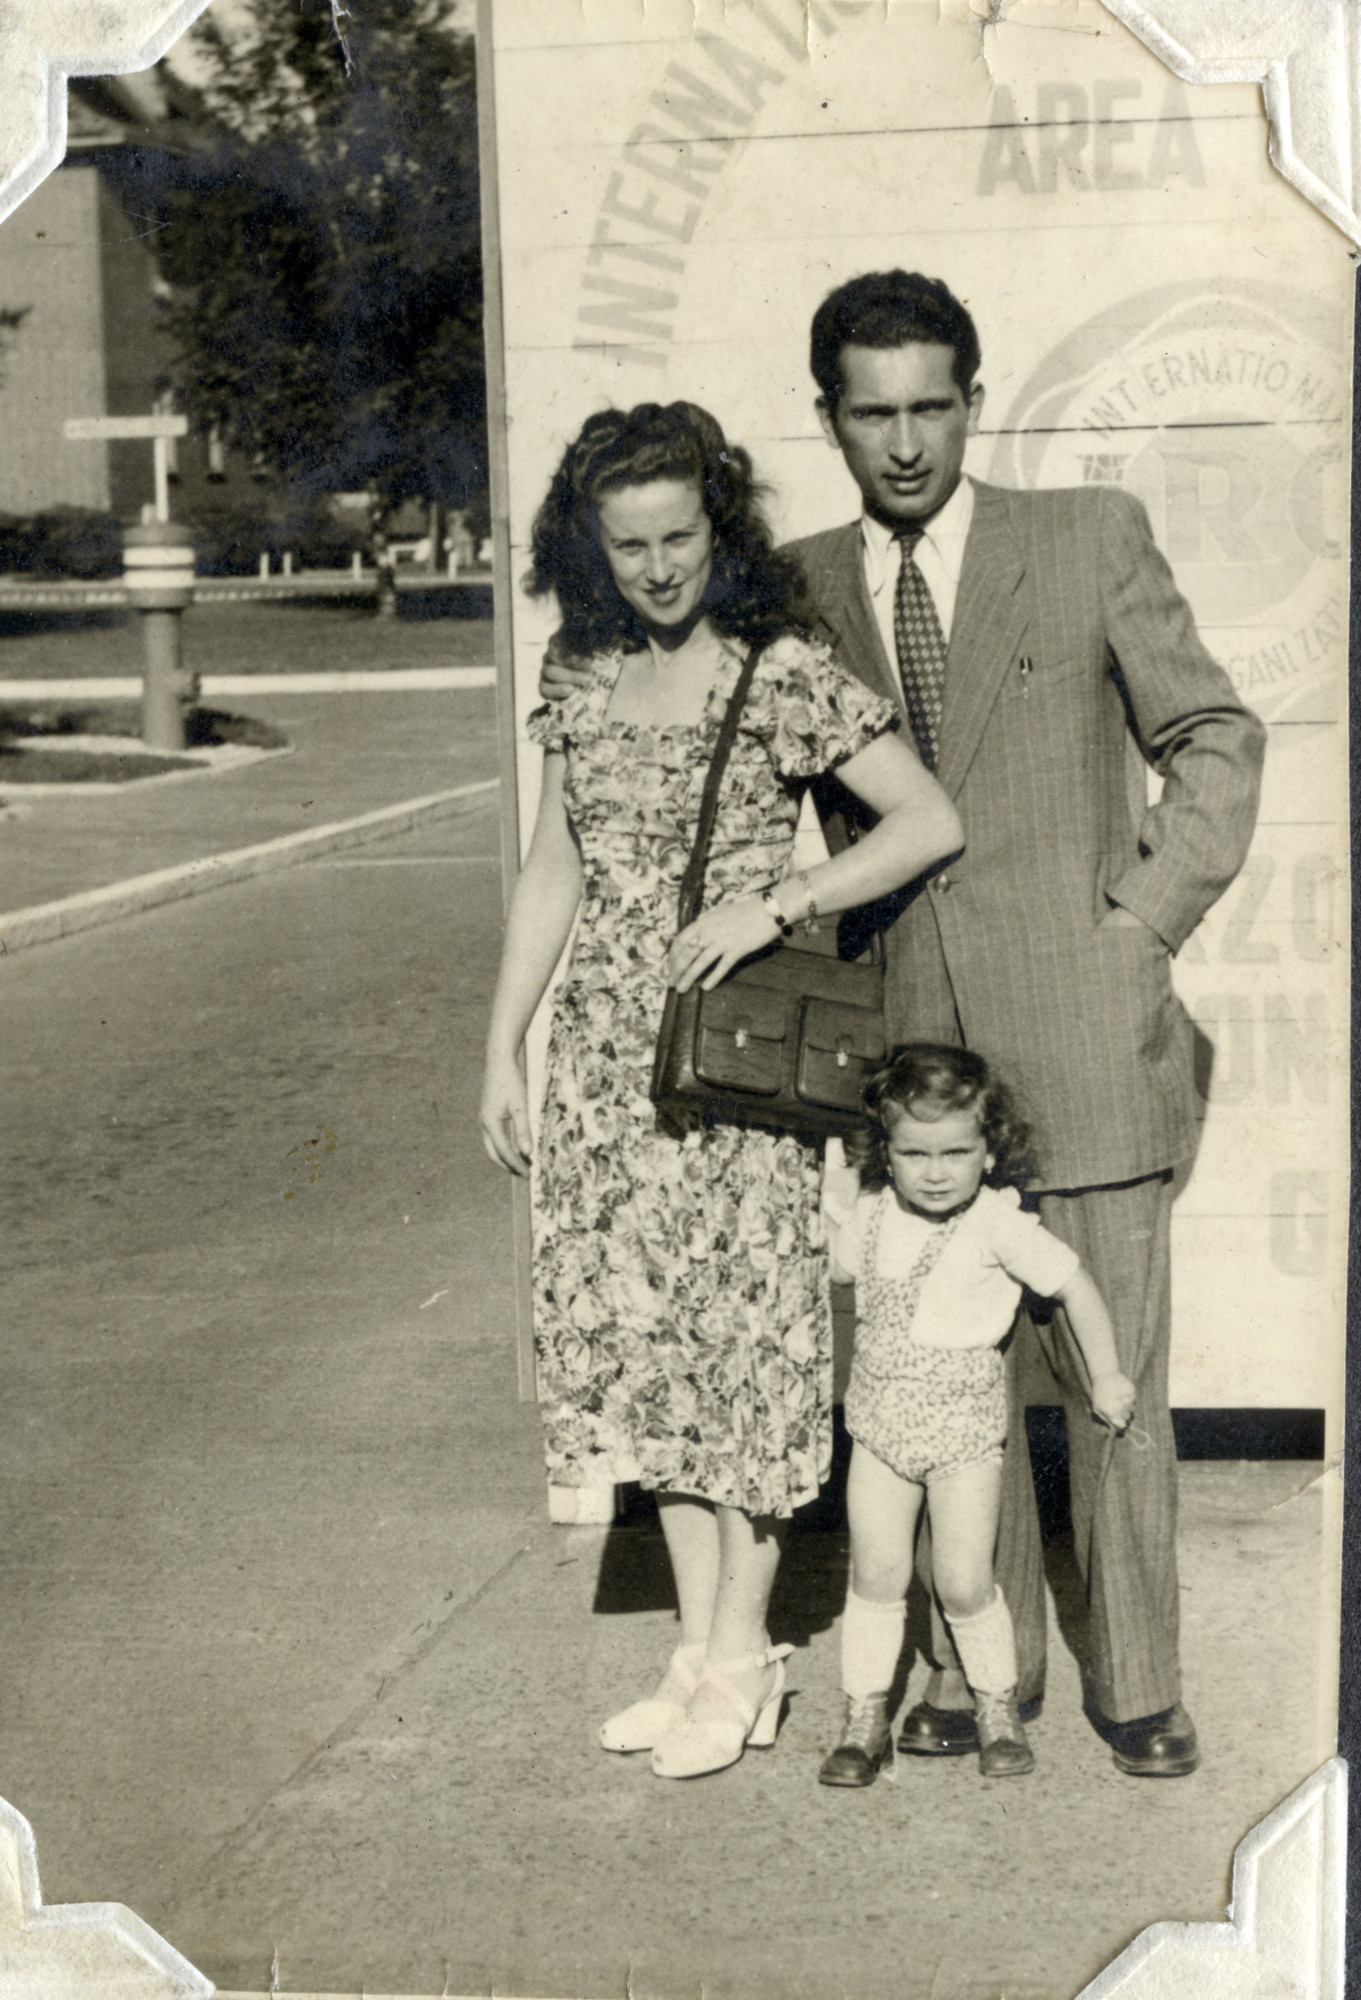 A Czech Jewish family ready to depart for the United States from the porf of Bremen, Germany.  Pictured are Bella and David Perl with their daughter Rachel.